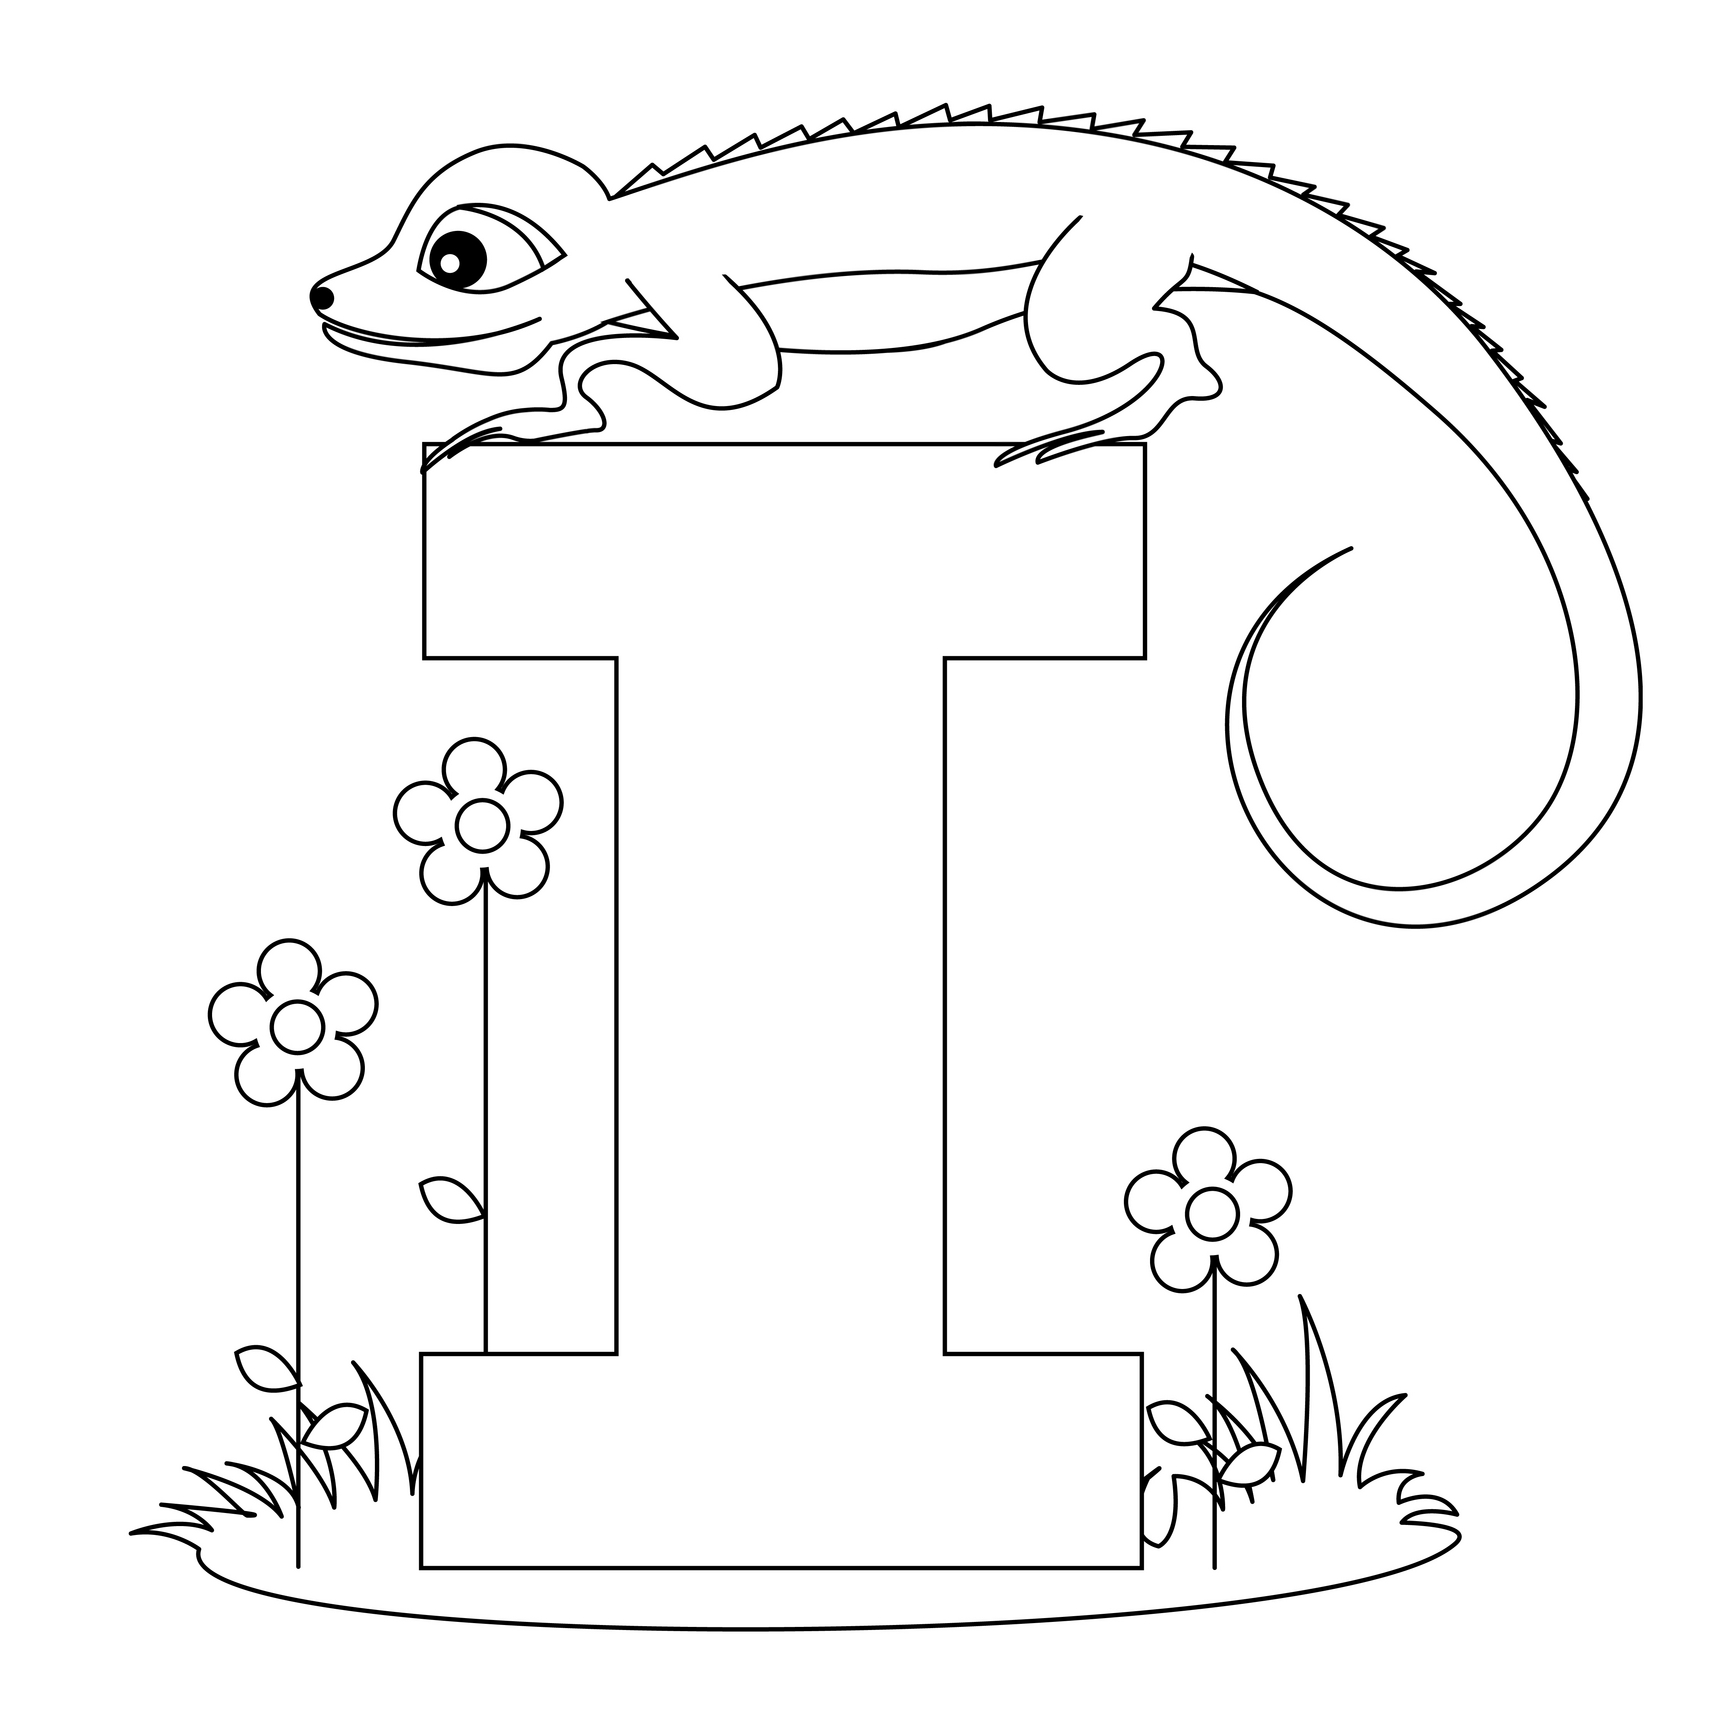 printable alphabet coloring pages animals | Printable alphabet worksheets letter i for Iguana for ...